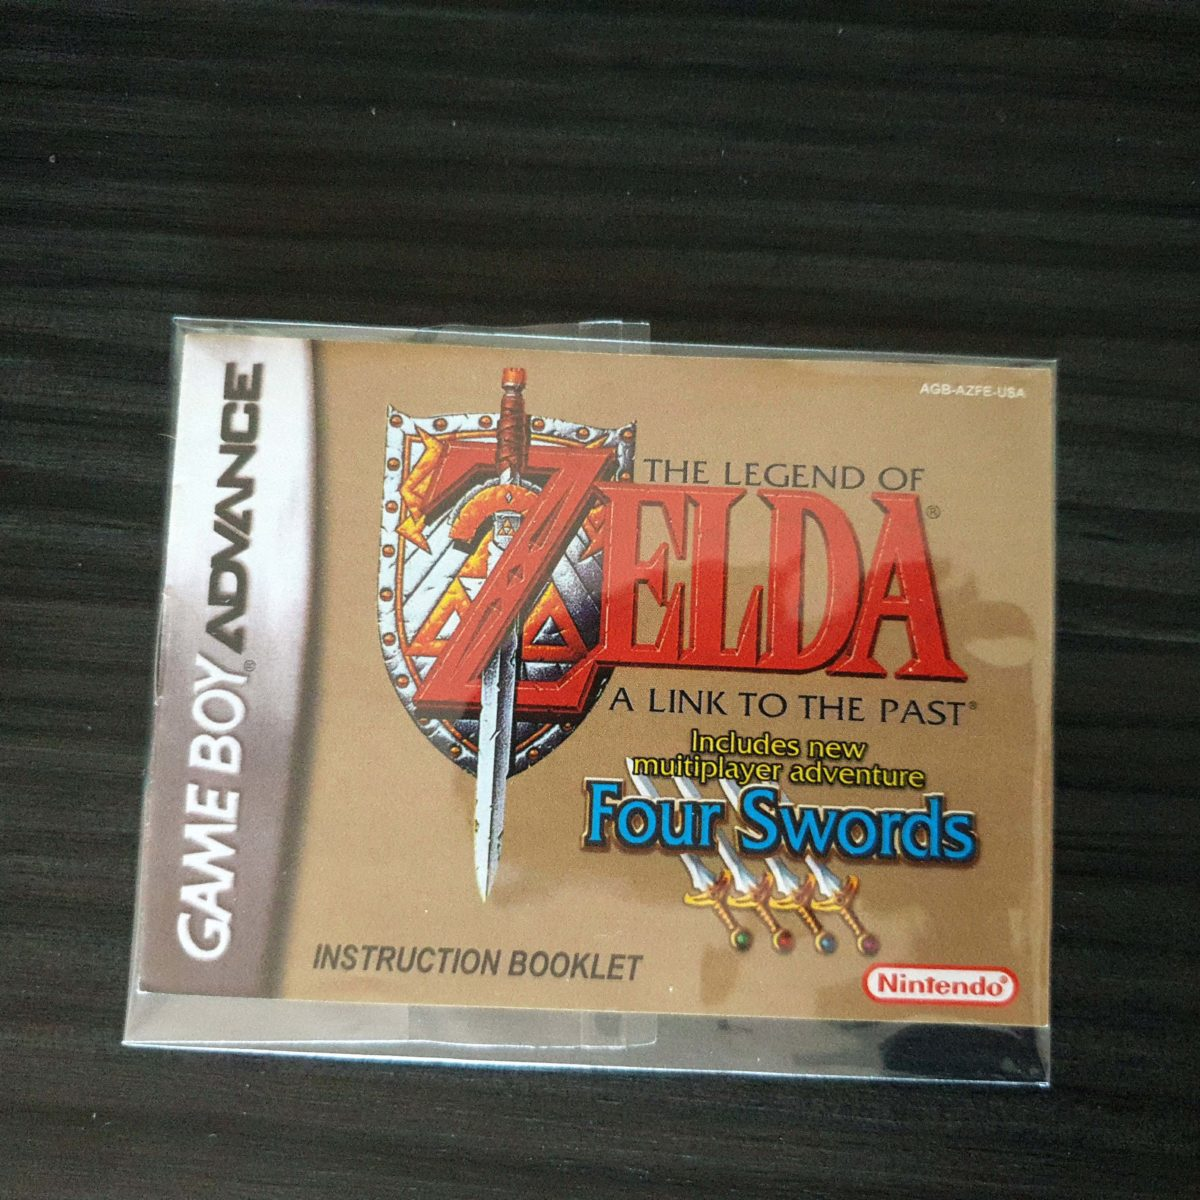 The Legend of Zelda A Link To The Past + Four Swords Pirate GBA